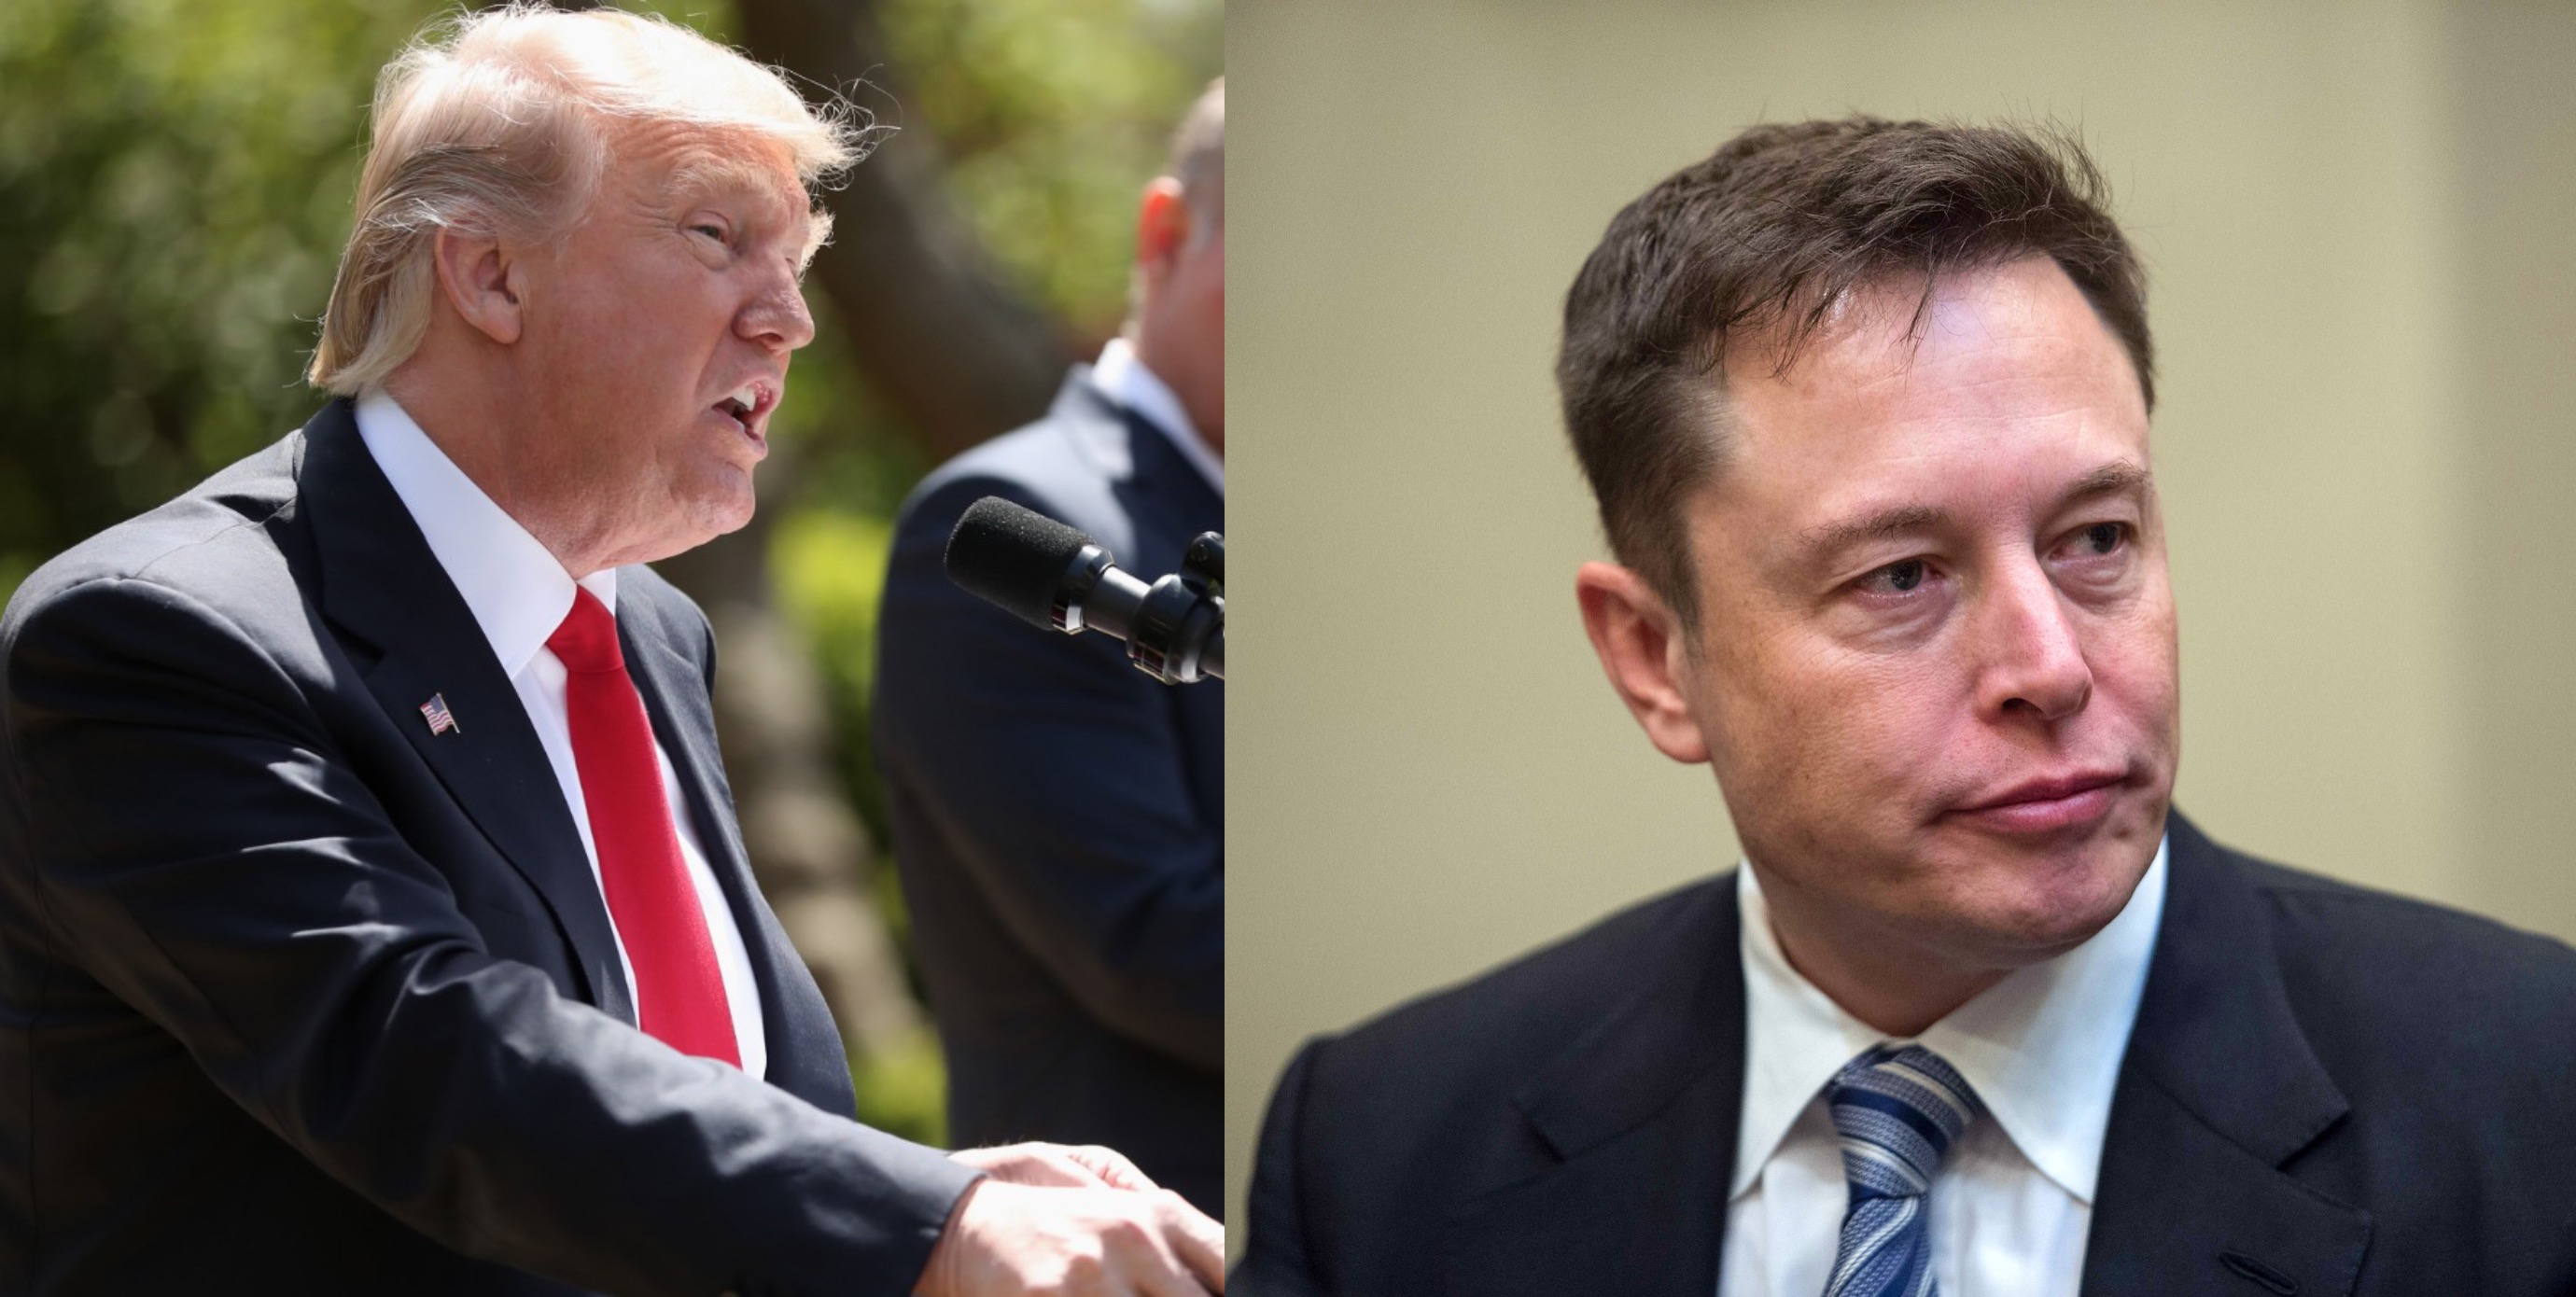 Elon Musk led the way. now Trump's council is completely wiped out